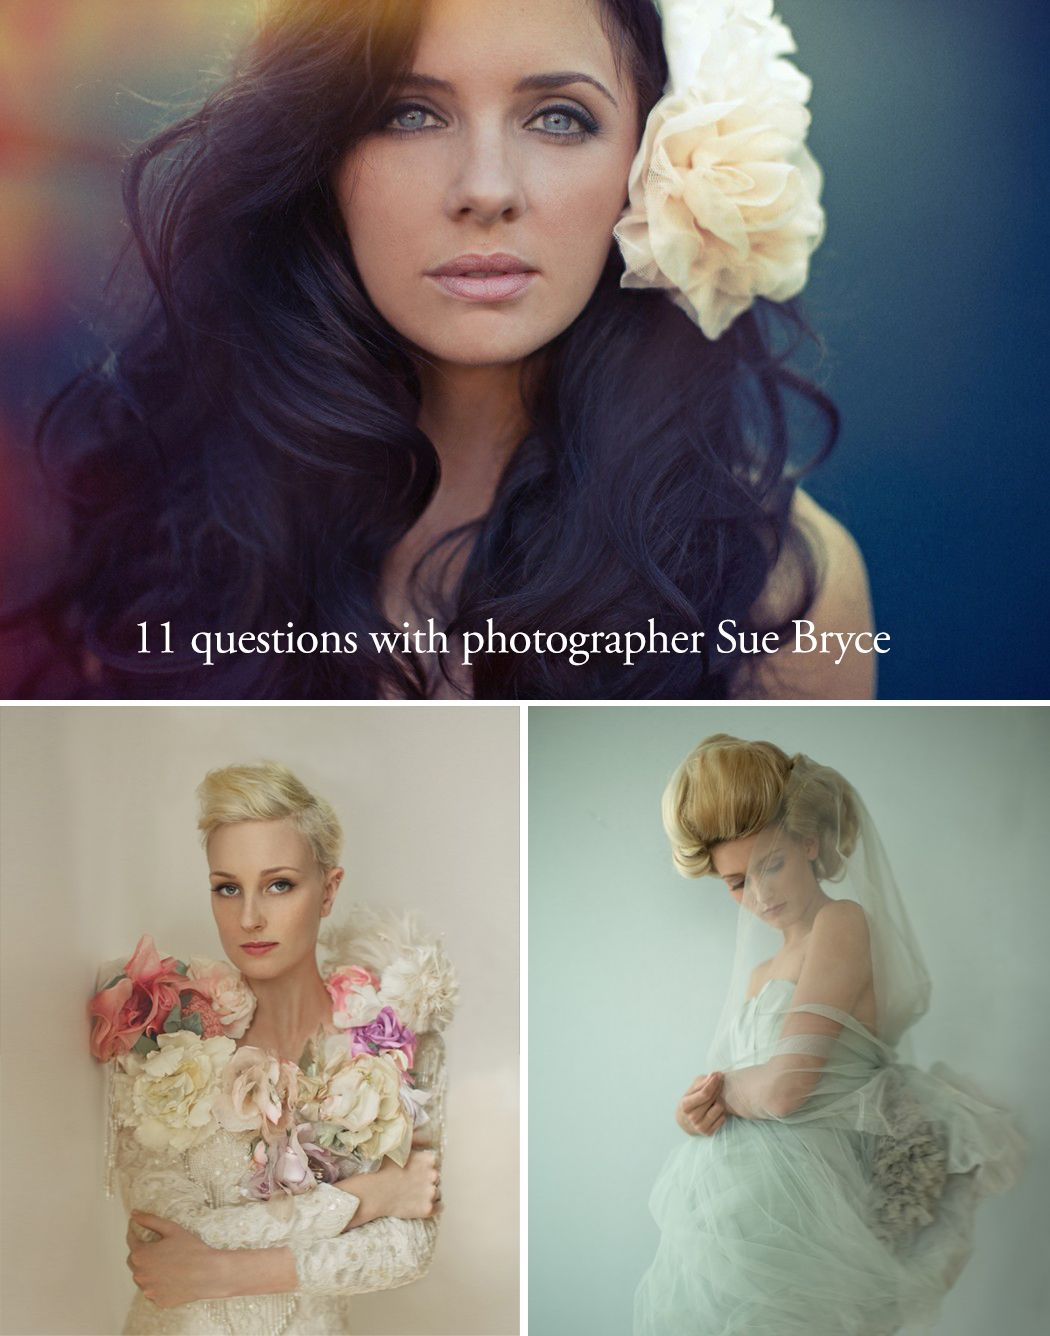 11 questions with photographer Sue Bryce